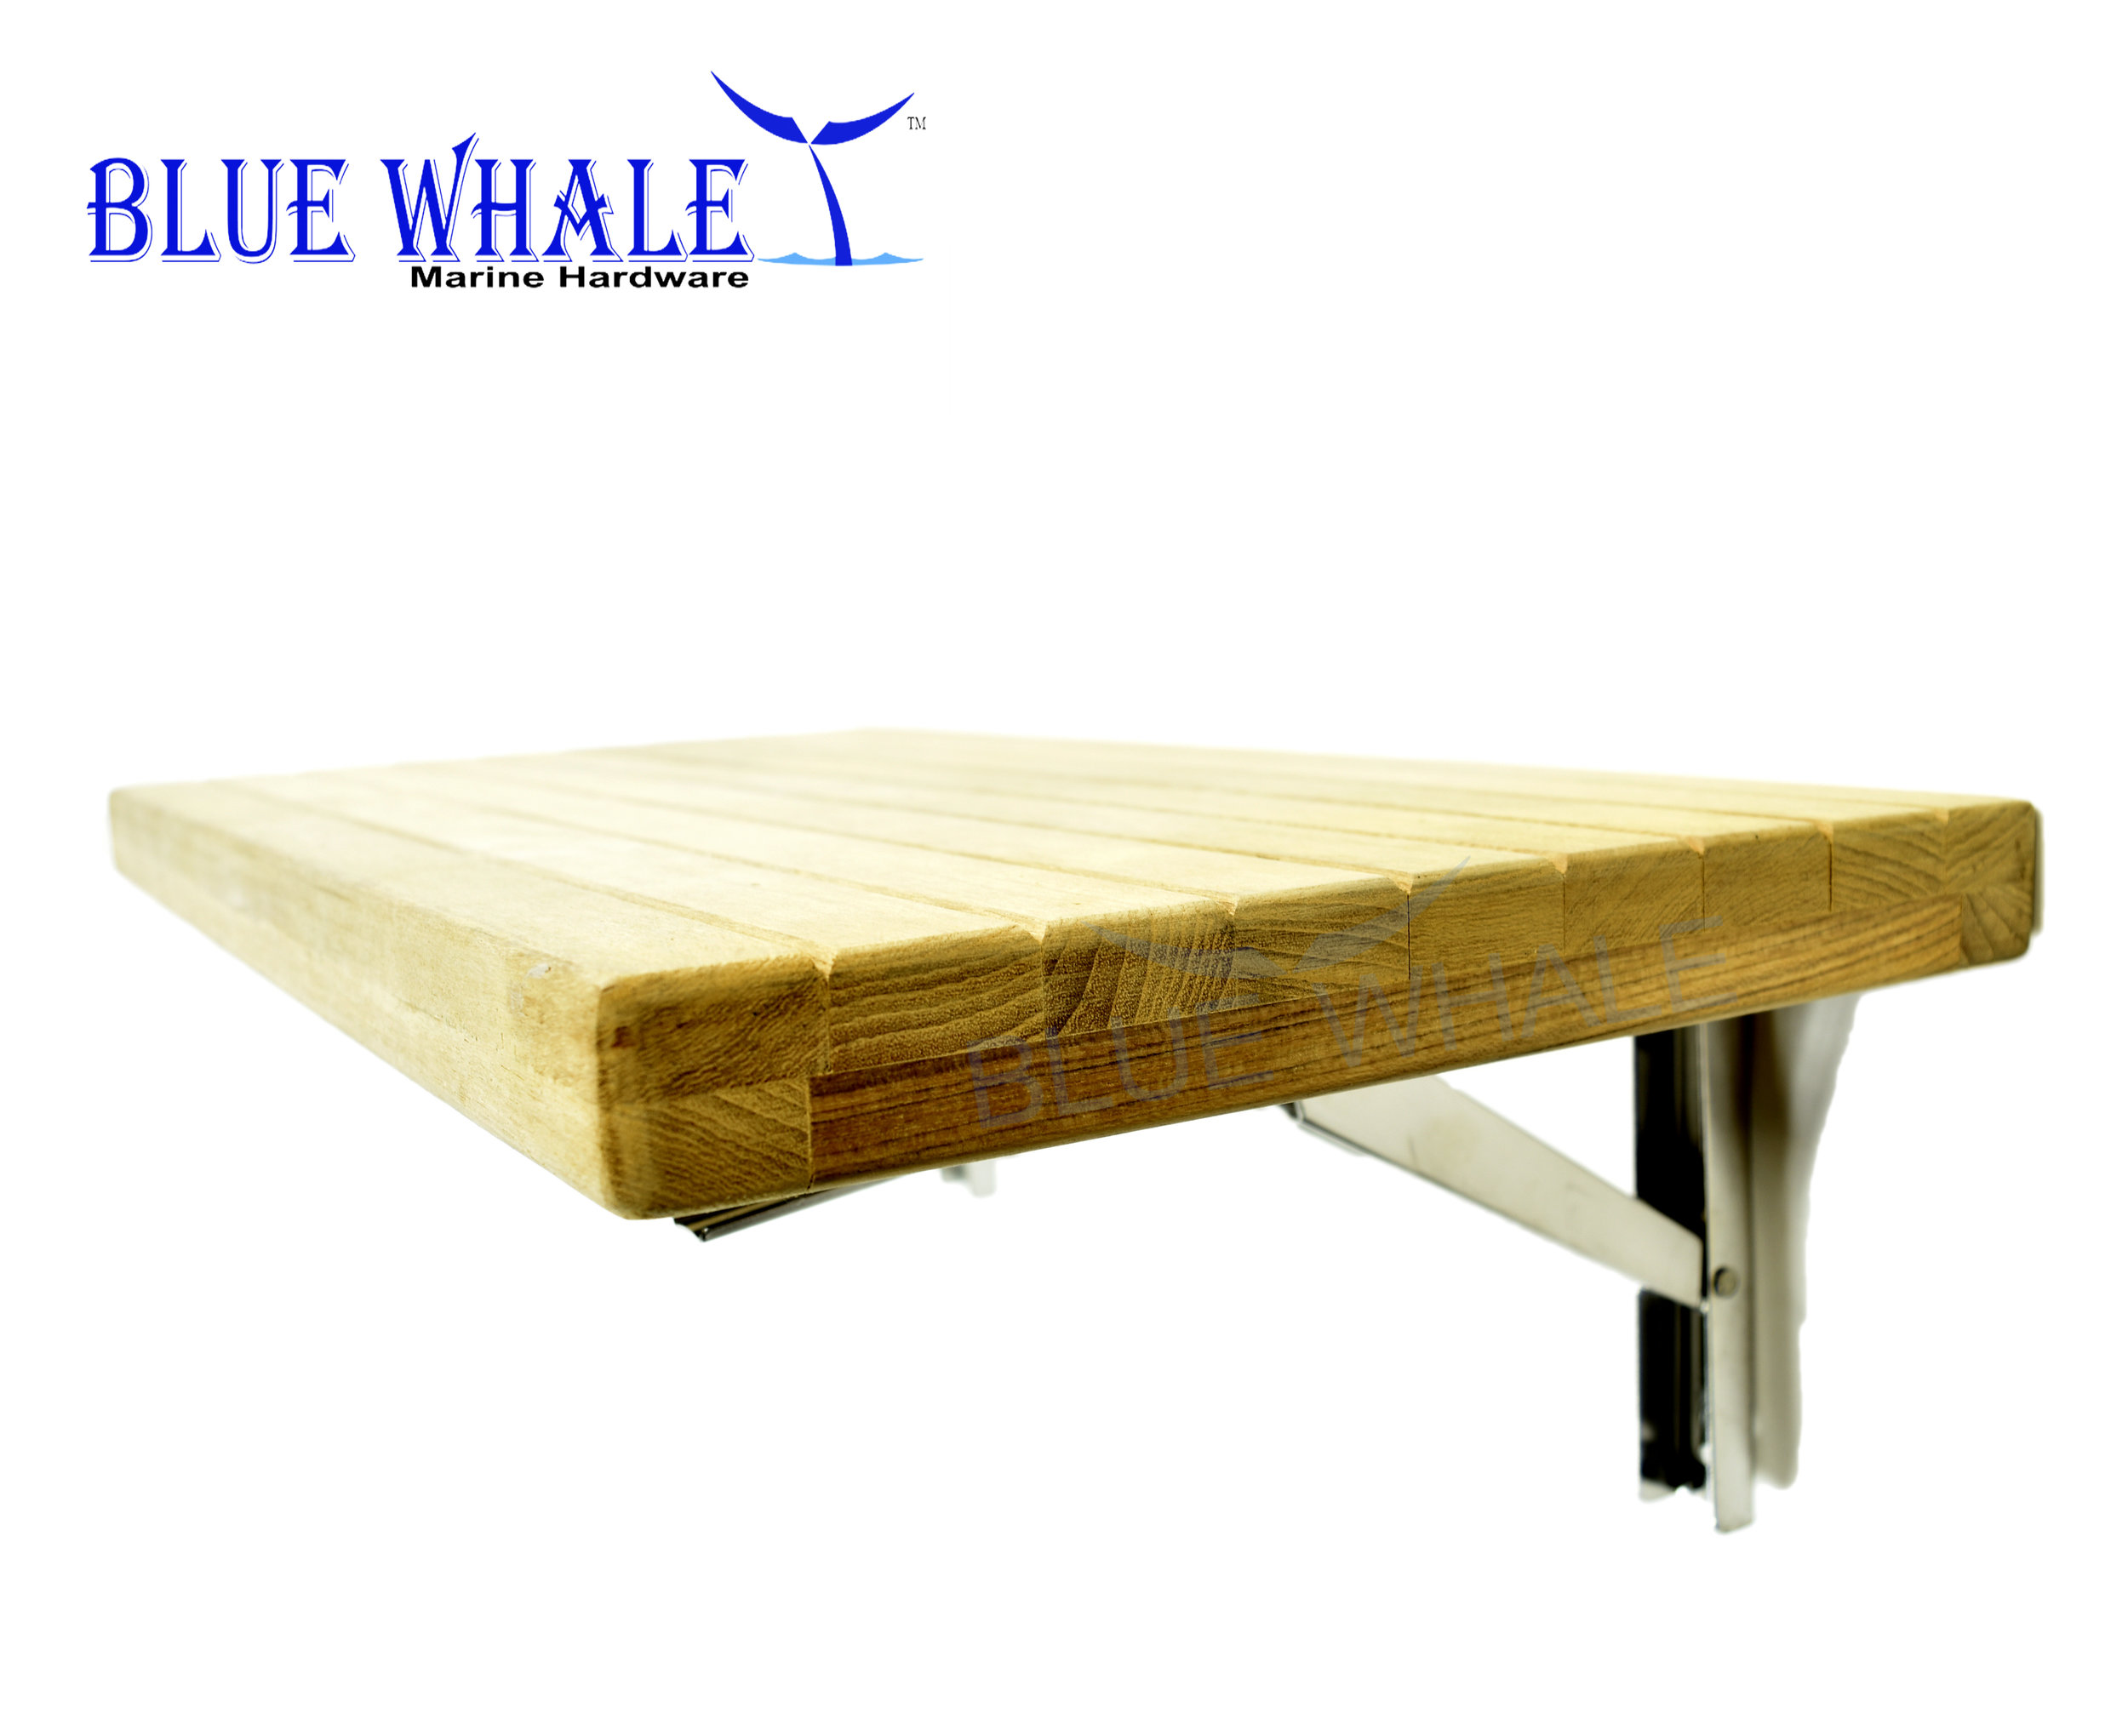 Astonishing New Fold Down Bench Wooden Boat Bench Wide In Range High Quality Blue Whale Marine Hardware Andrewgaddart Wooden Chair Designs For Living Room Andrewgaddartcom